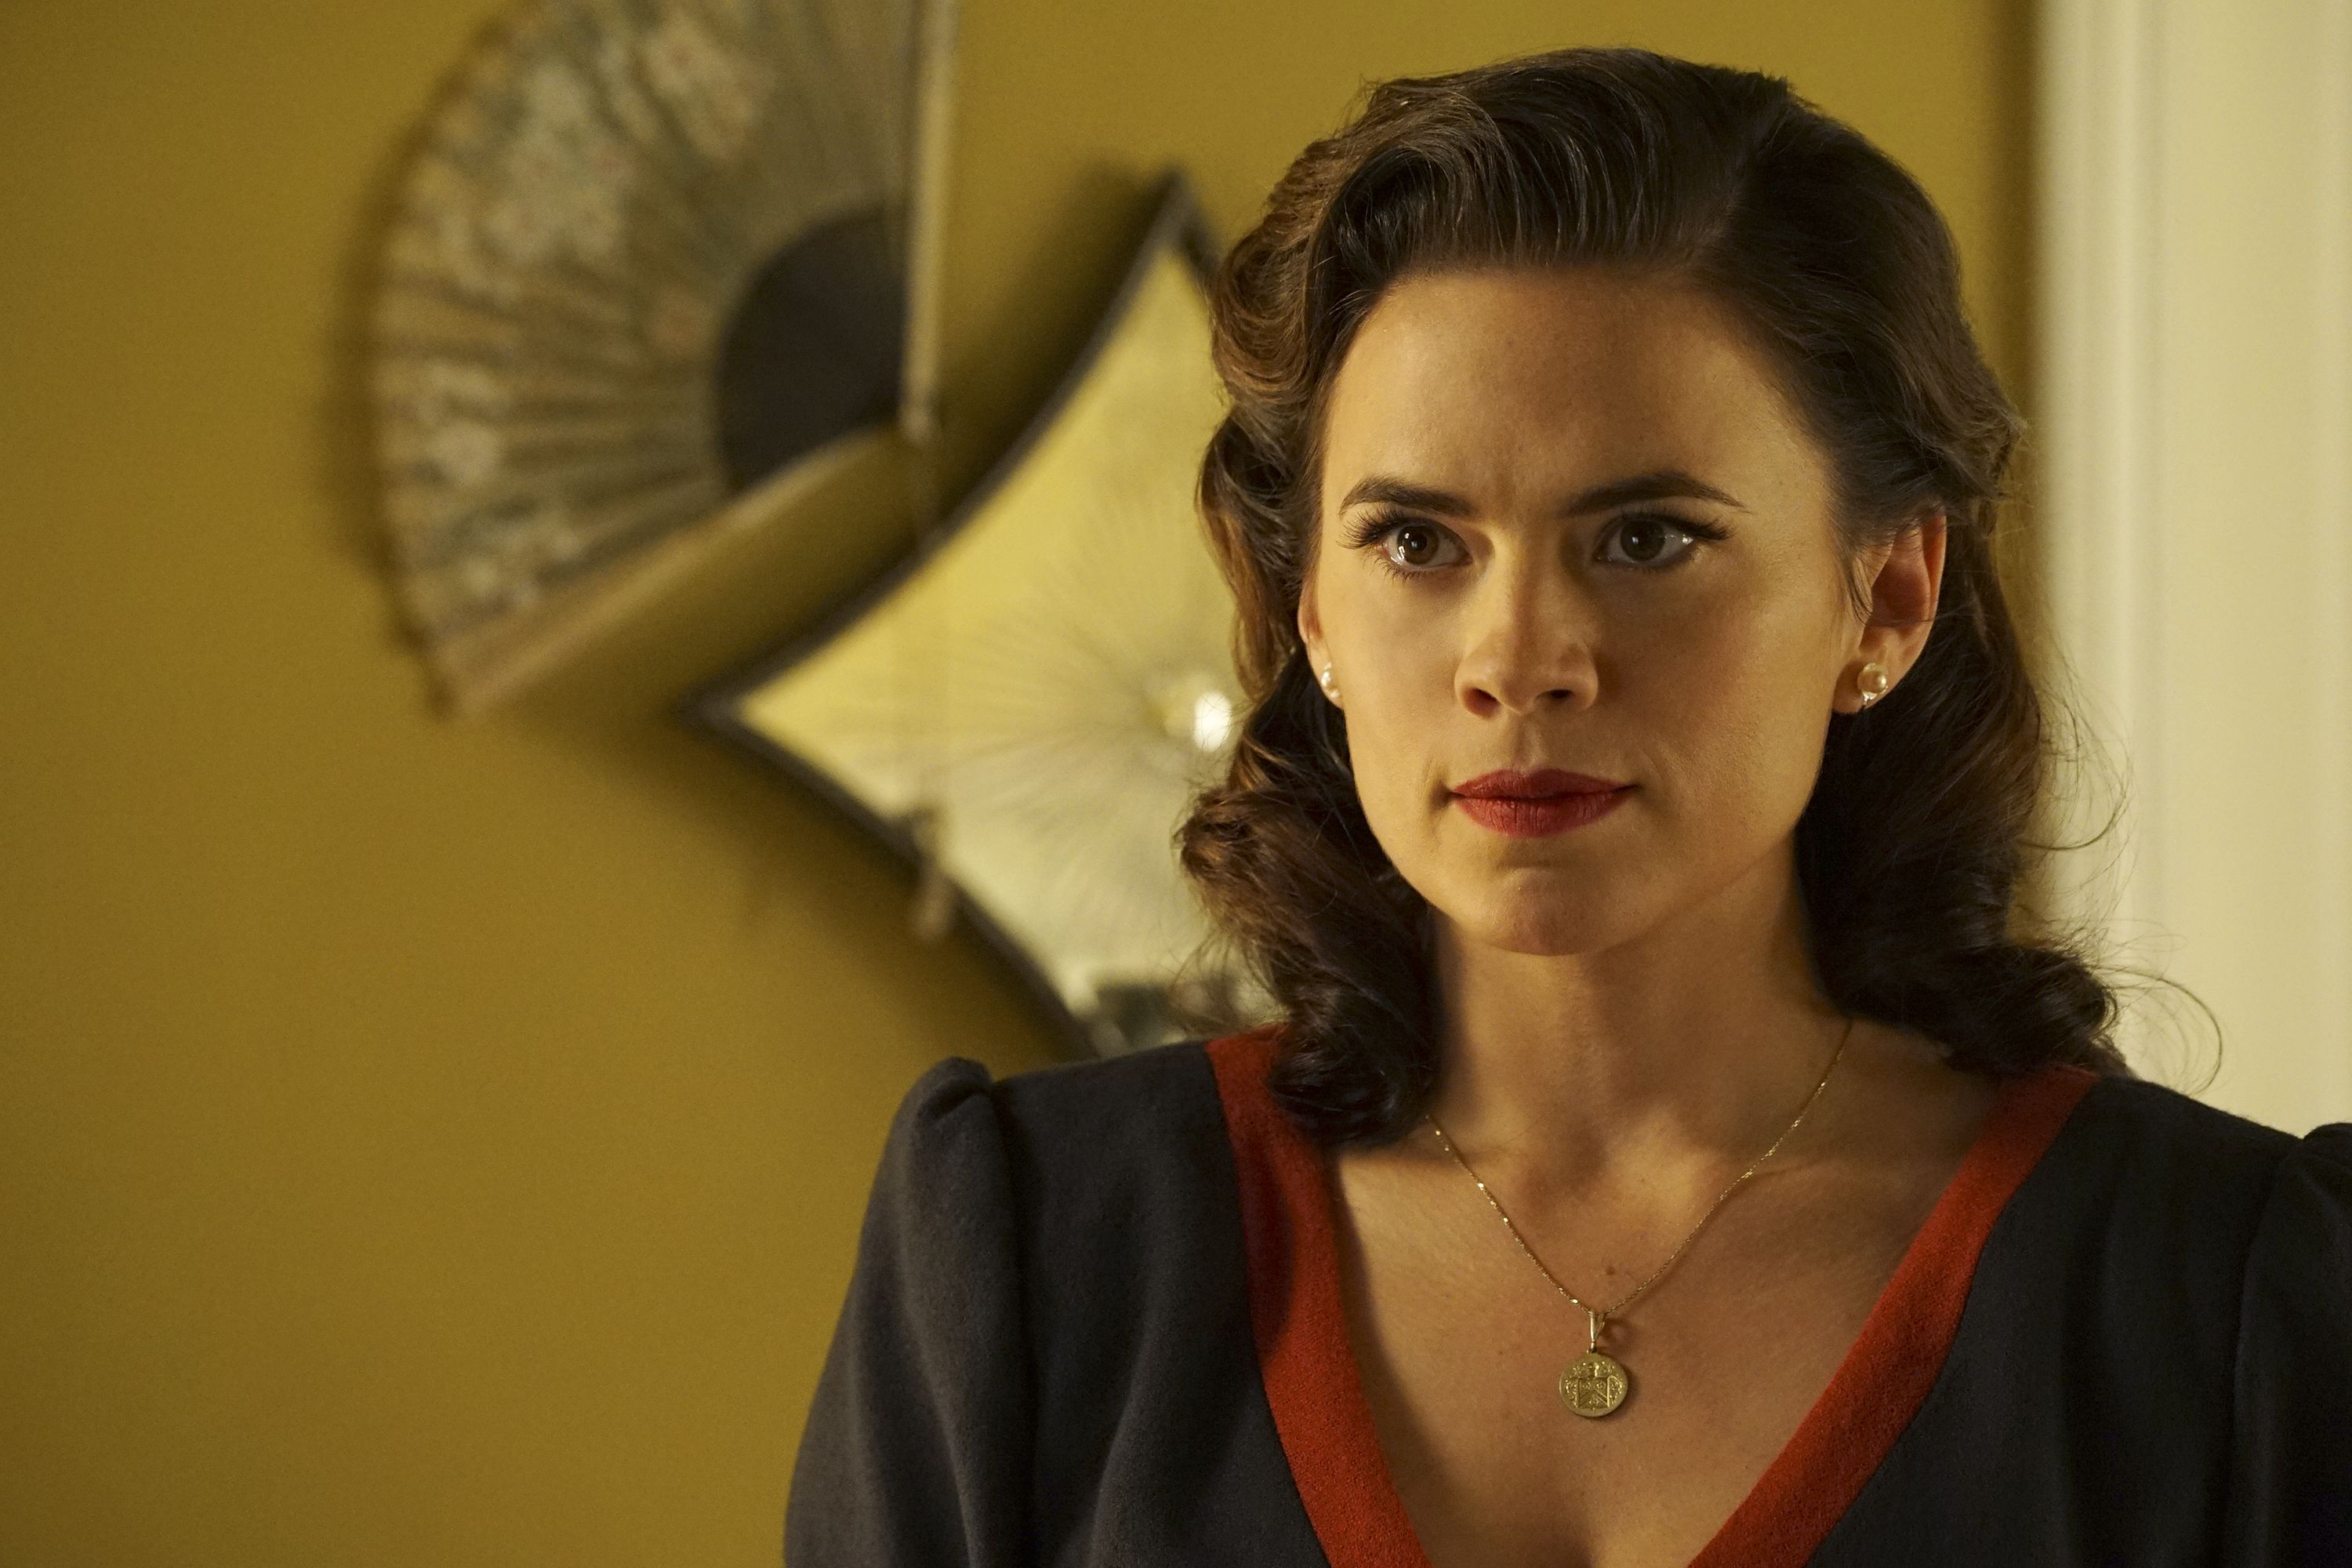 Will Peggy Carter appear in Agents of SHIELD season 7?